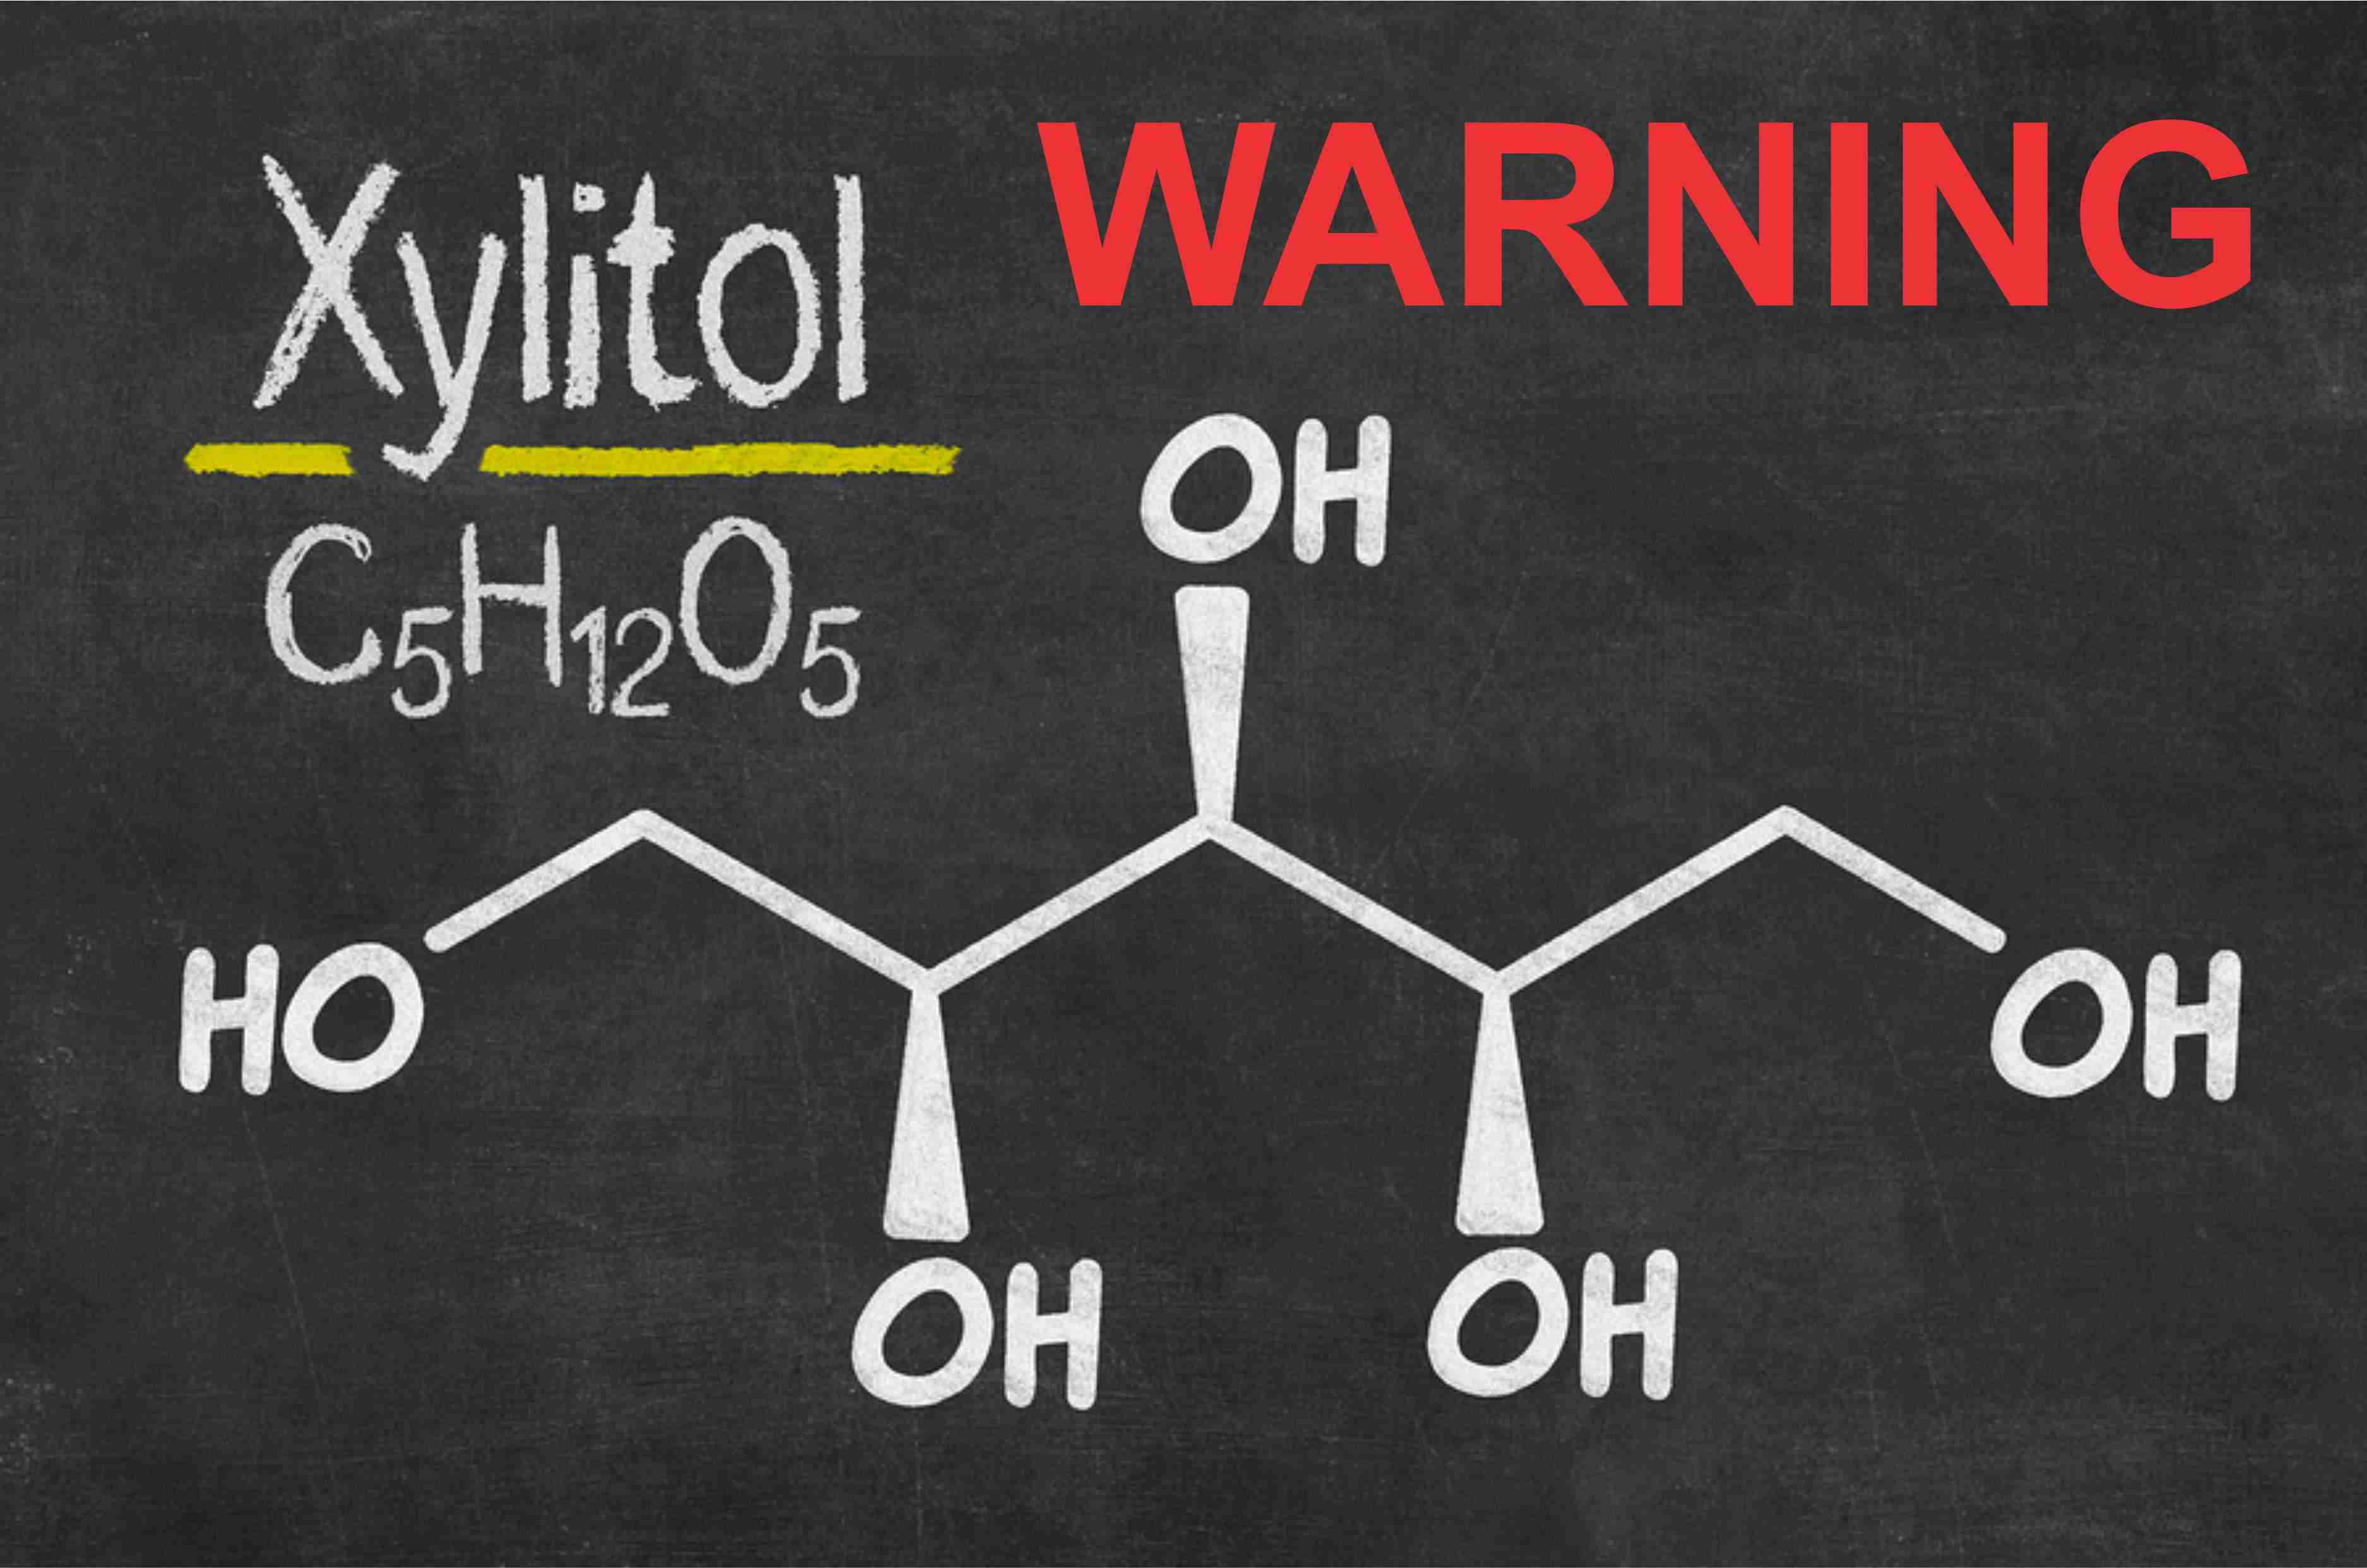 Xylitol Warning